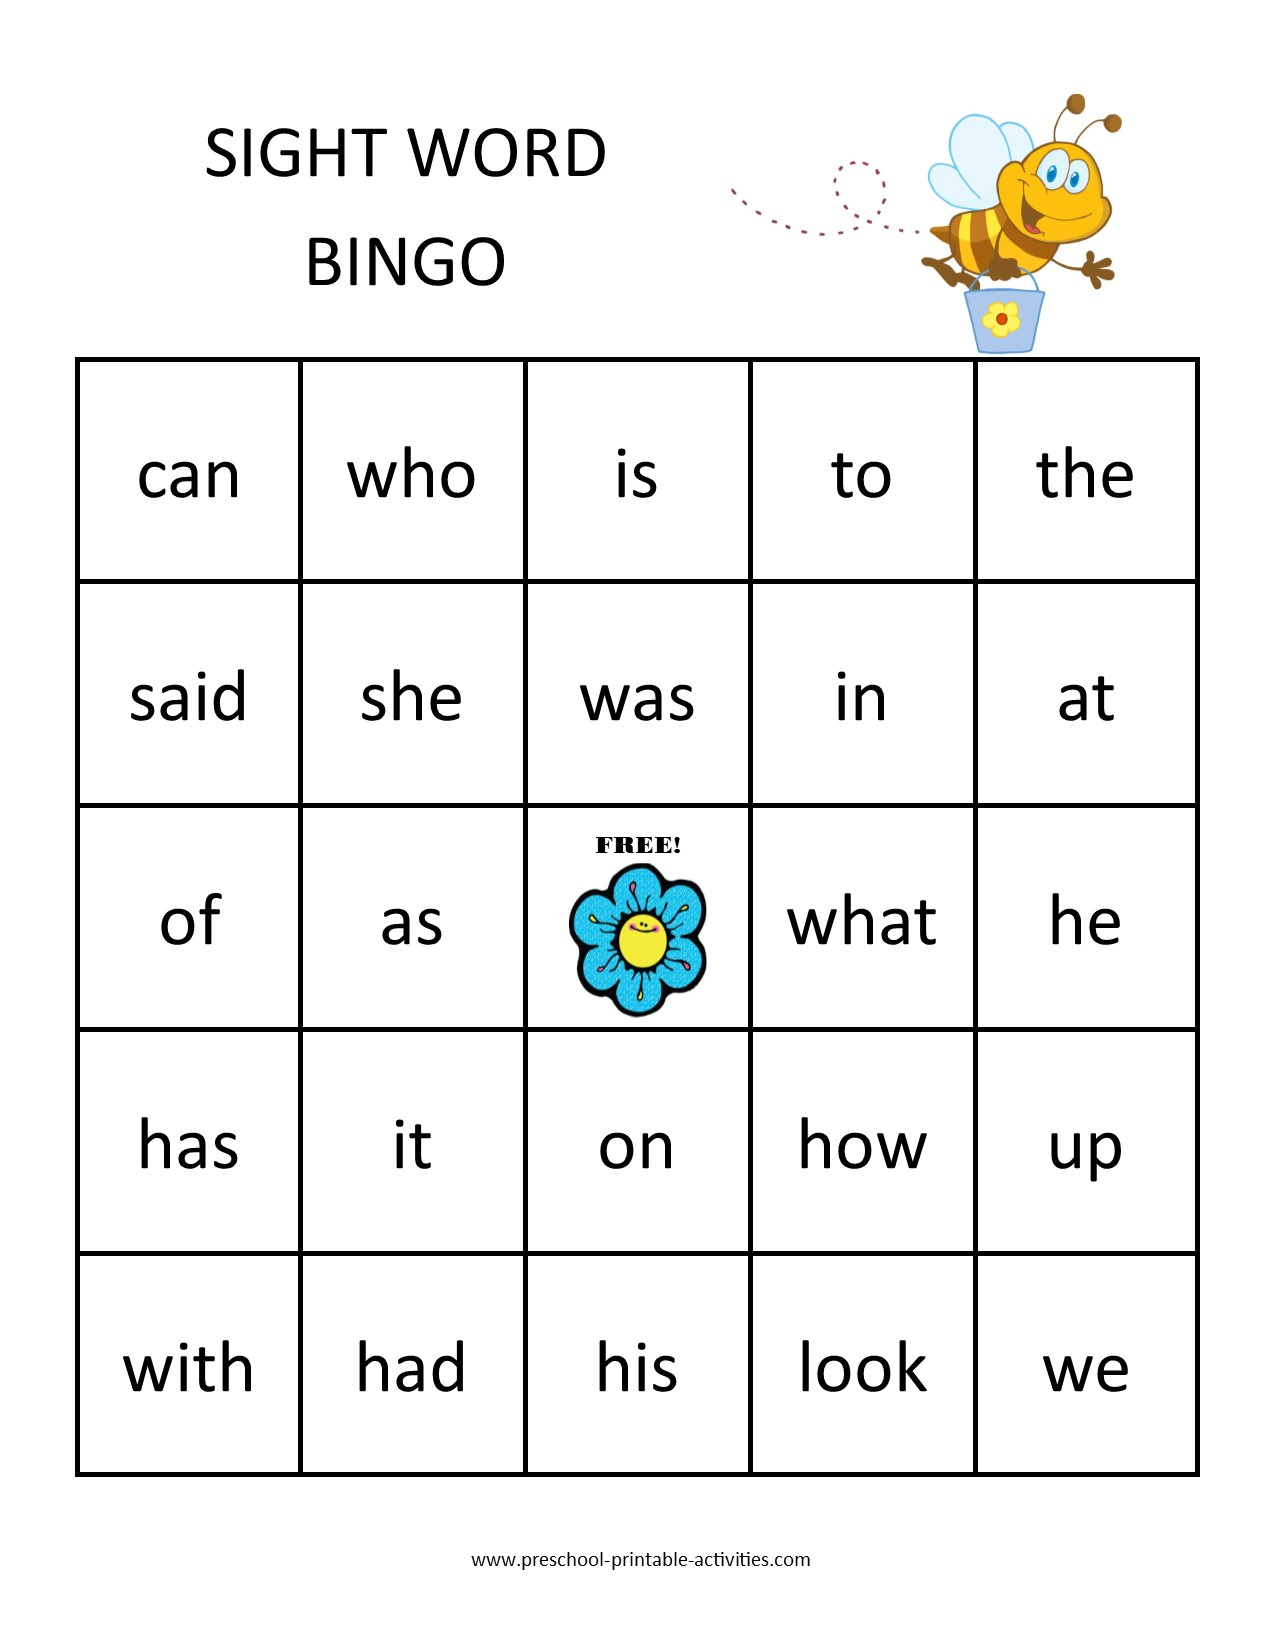 Sight Word Bingo Games